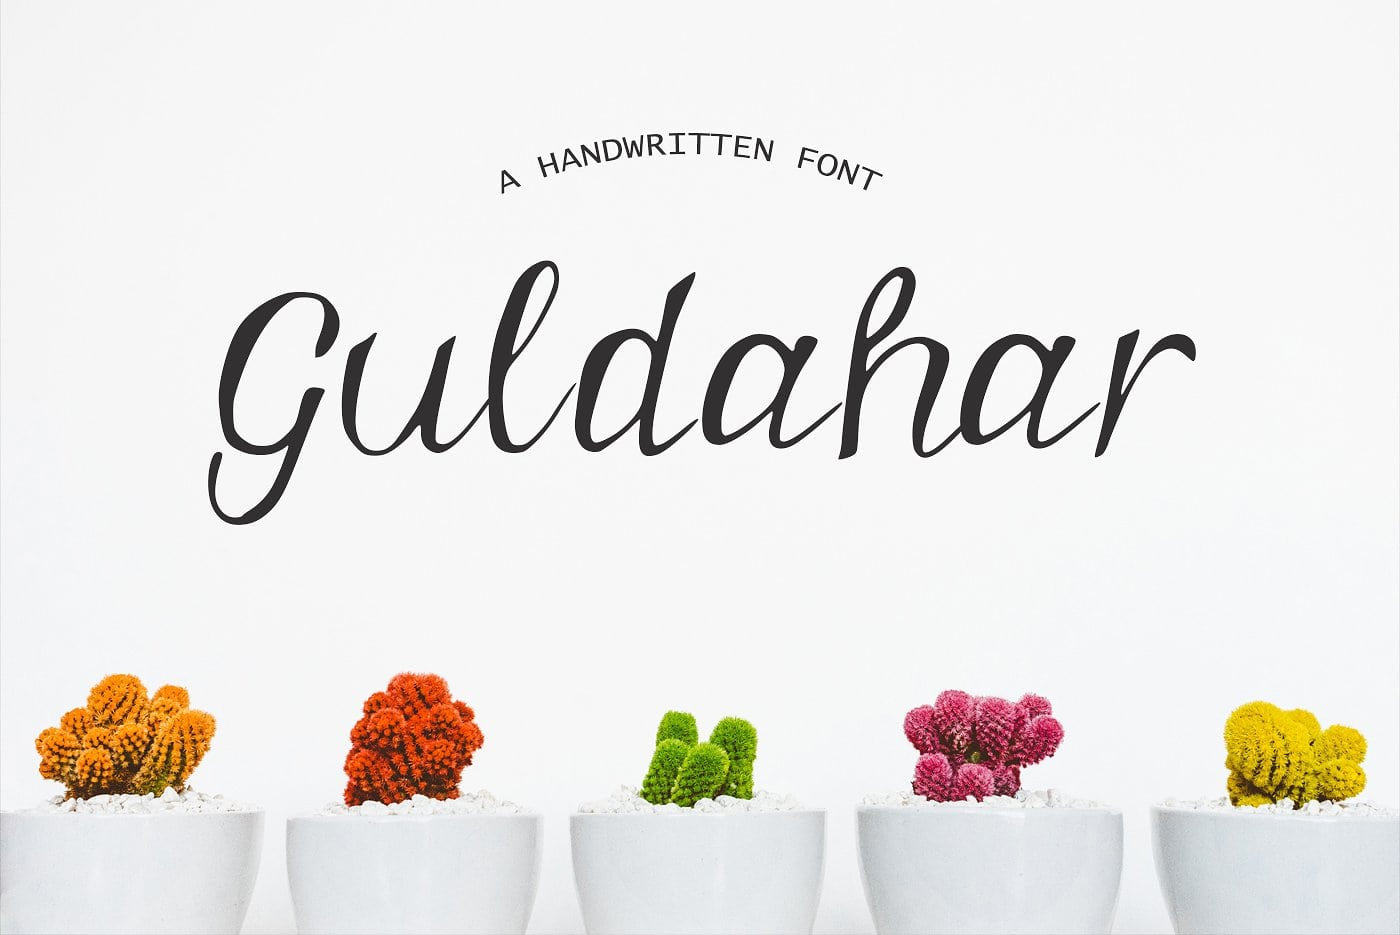 95+ Best Hand Lettering Fonts (Premium and Free) To Type the Most Important Words - main image. min